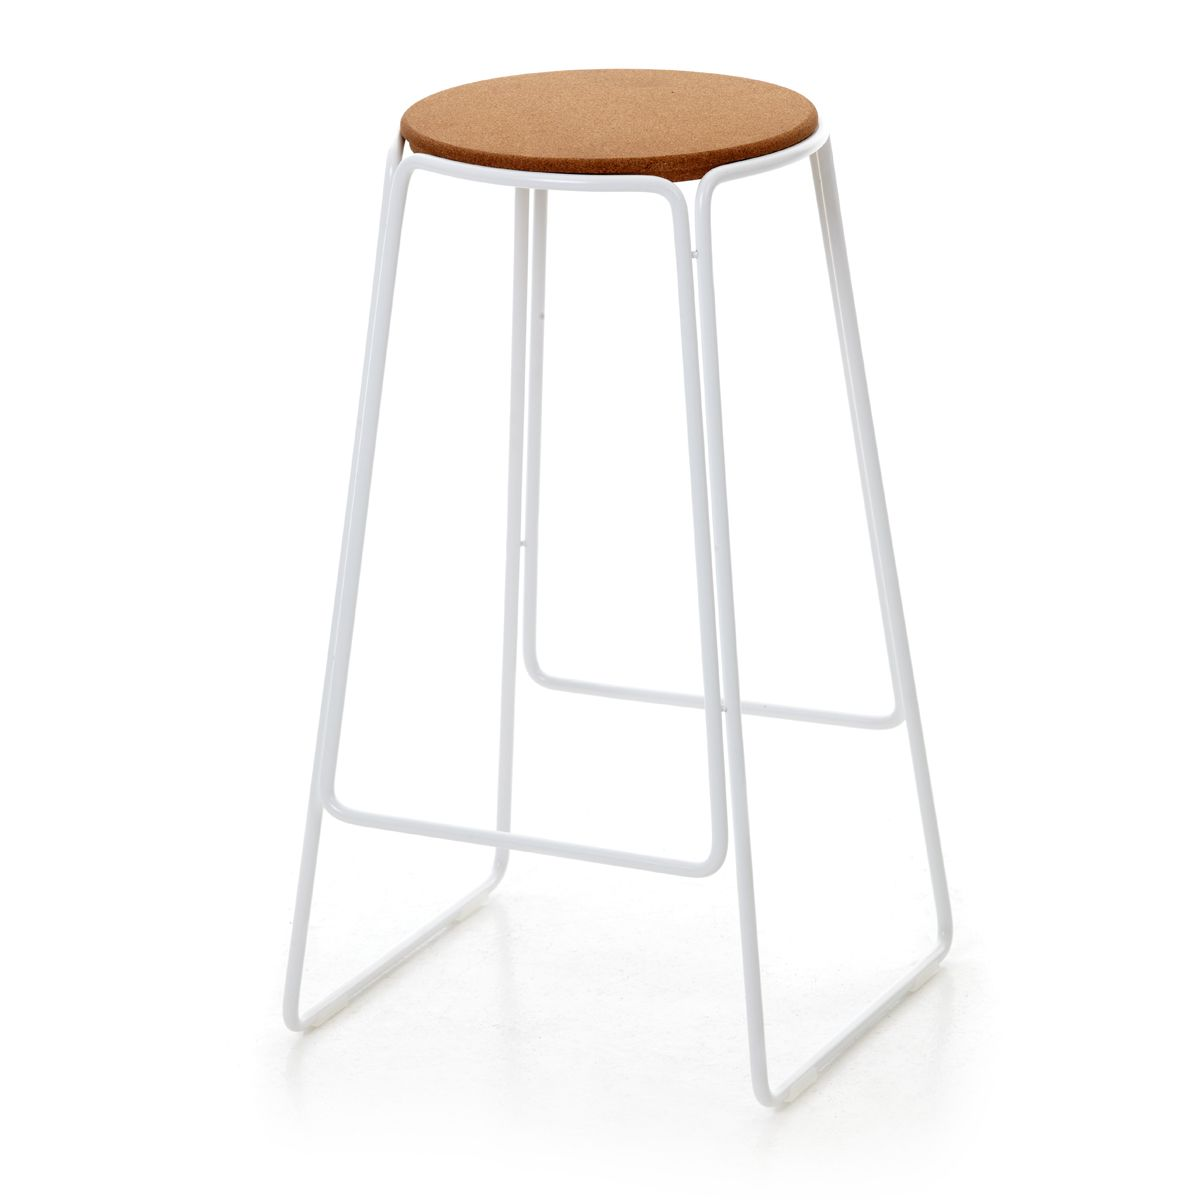 smed stool in white by oxdenmarq exclusive to great dane furniture